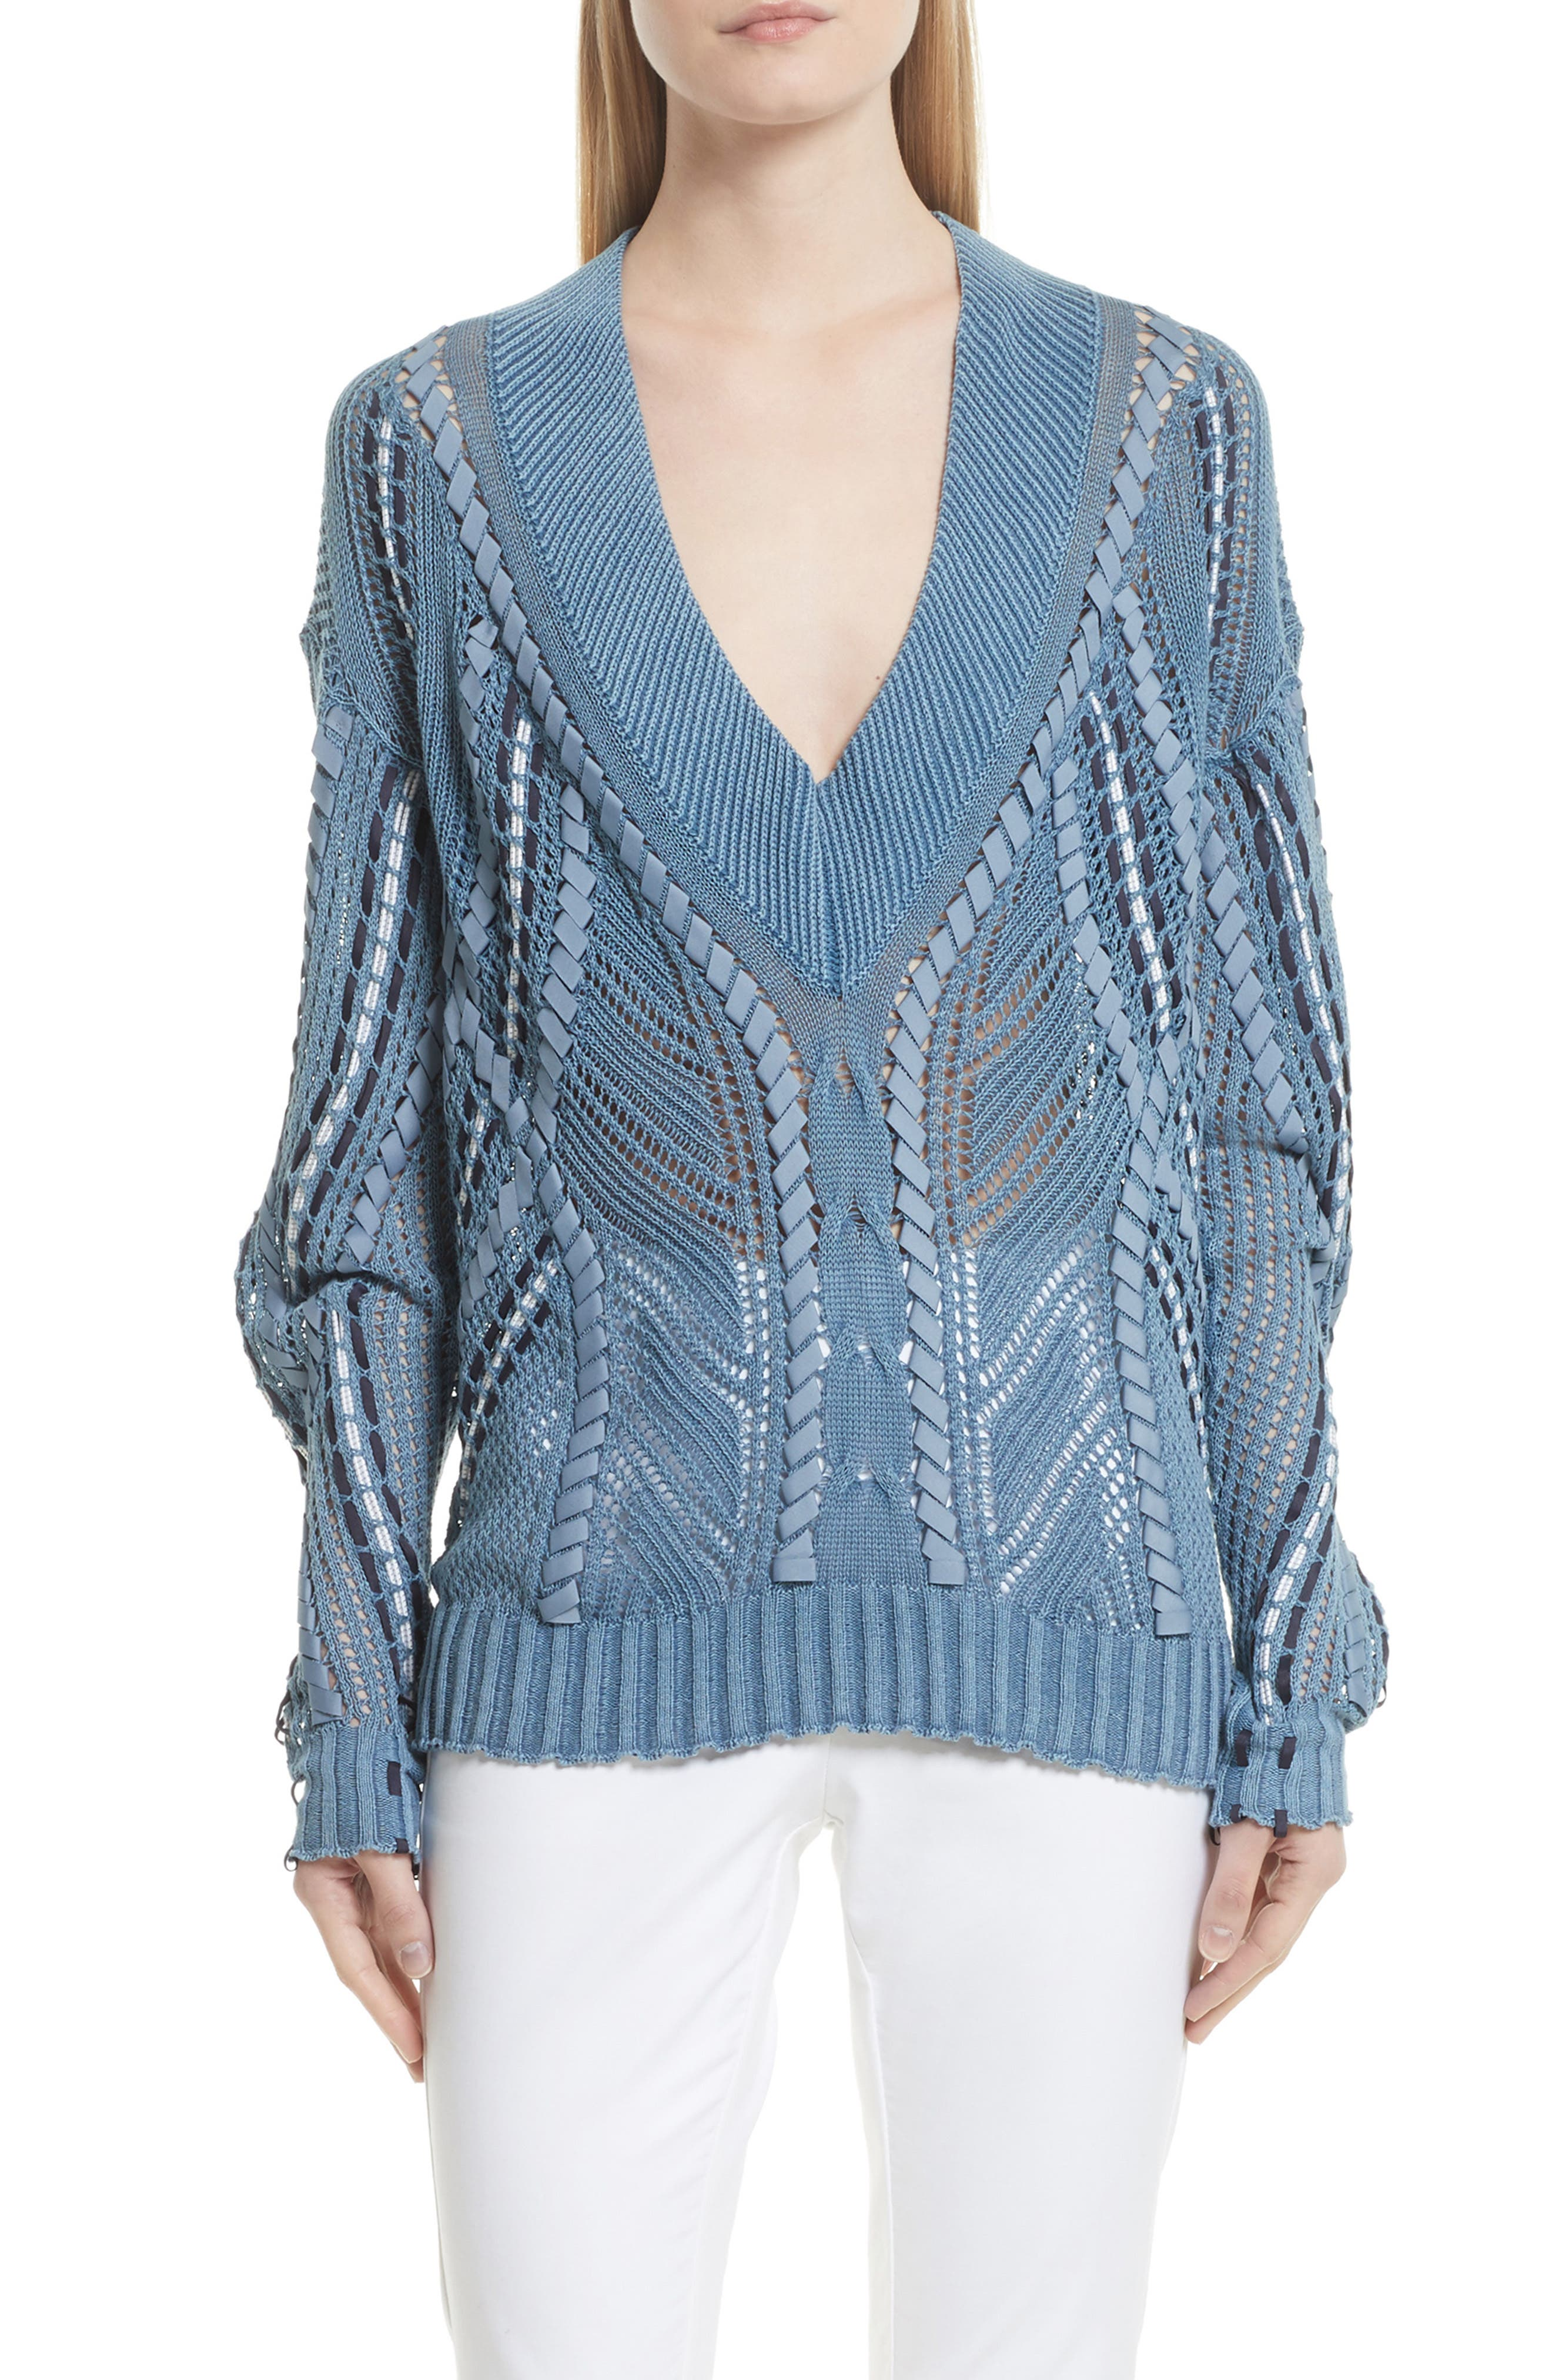 Alternate Image 1 Selected - rag & bone Lucie Pointelle Knit Cotton Blend Sweater